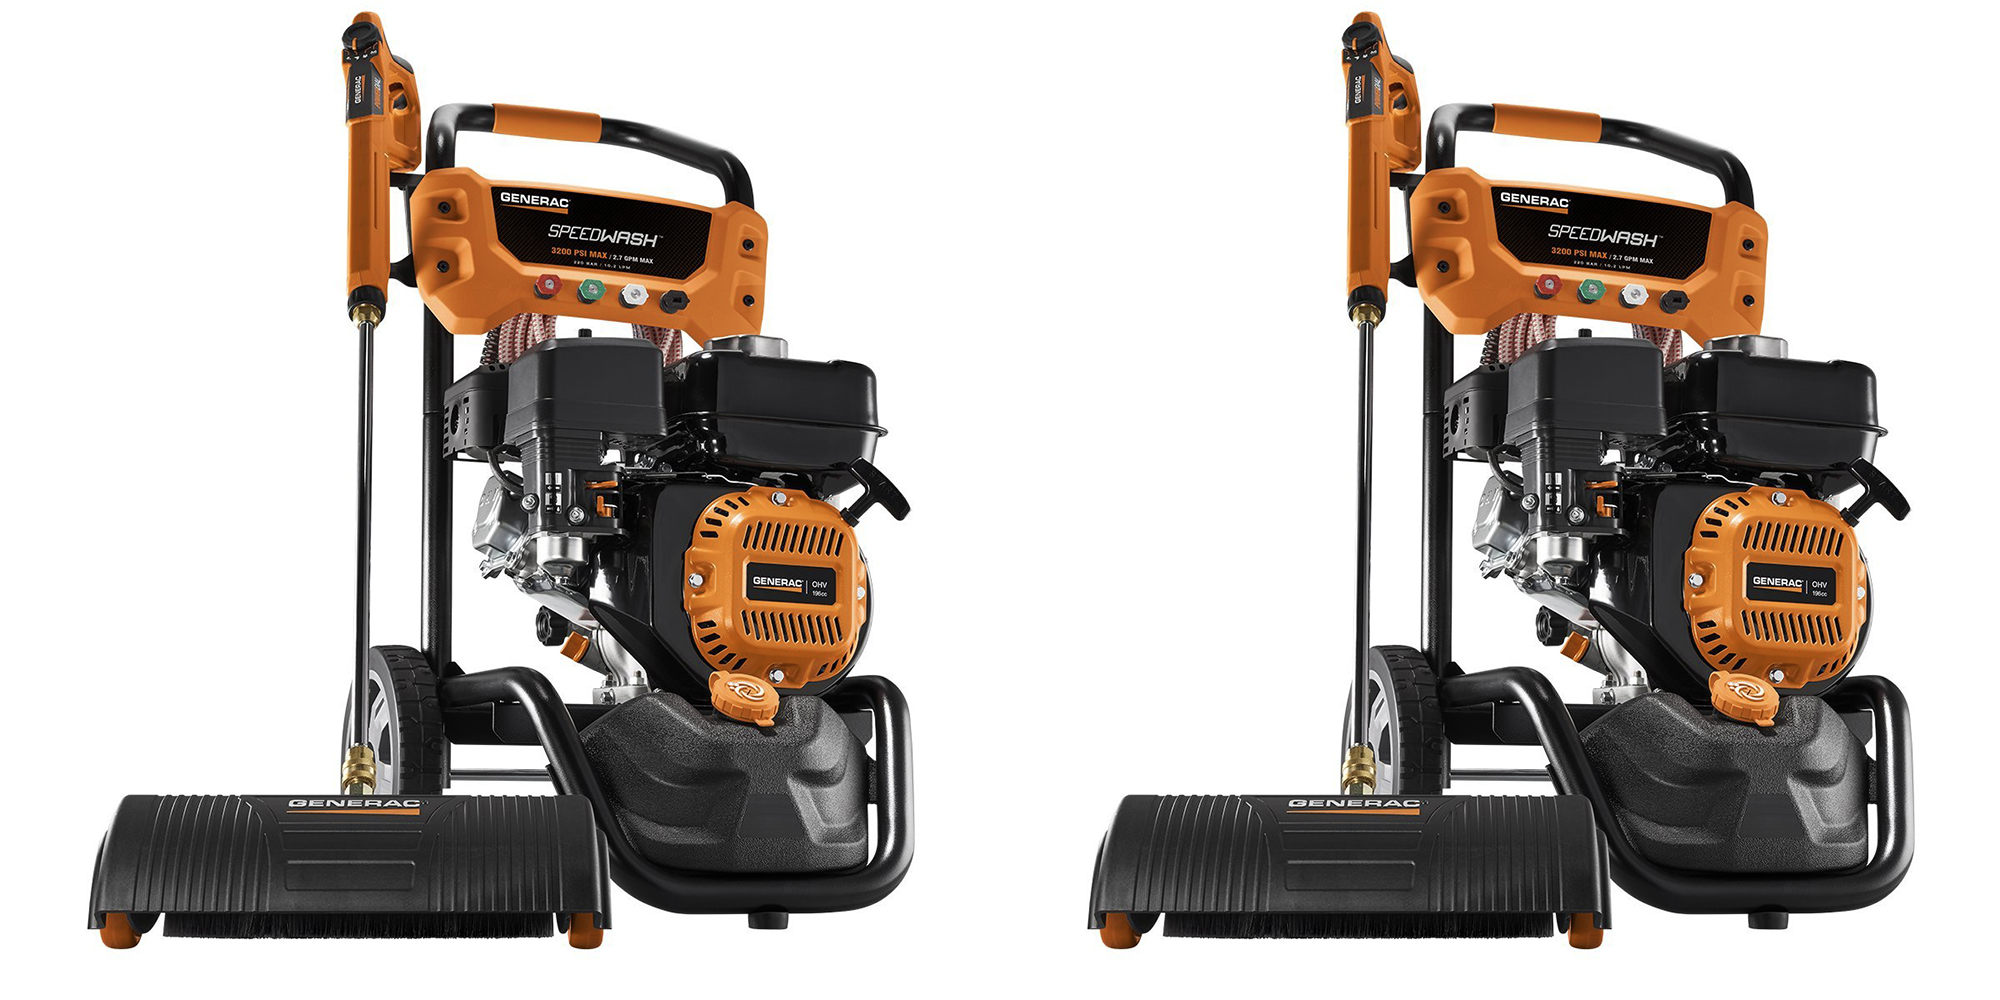 Today S Gold Box Includes The Generac 3200psi Pressure